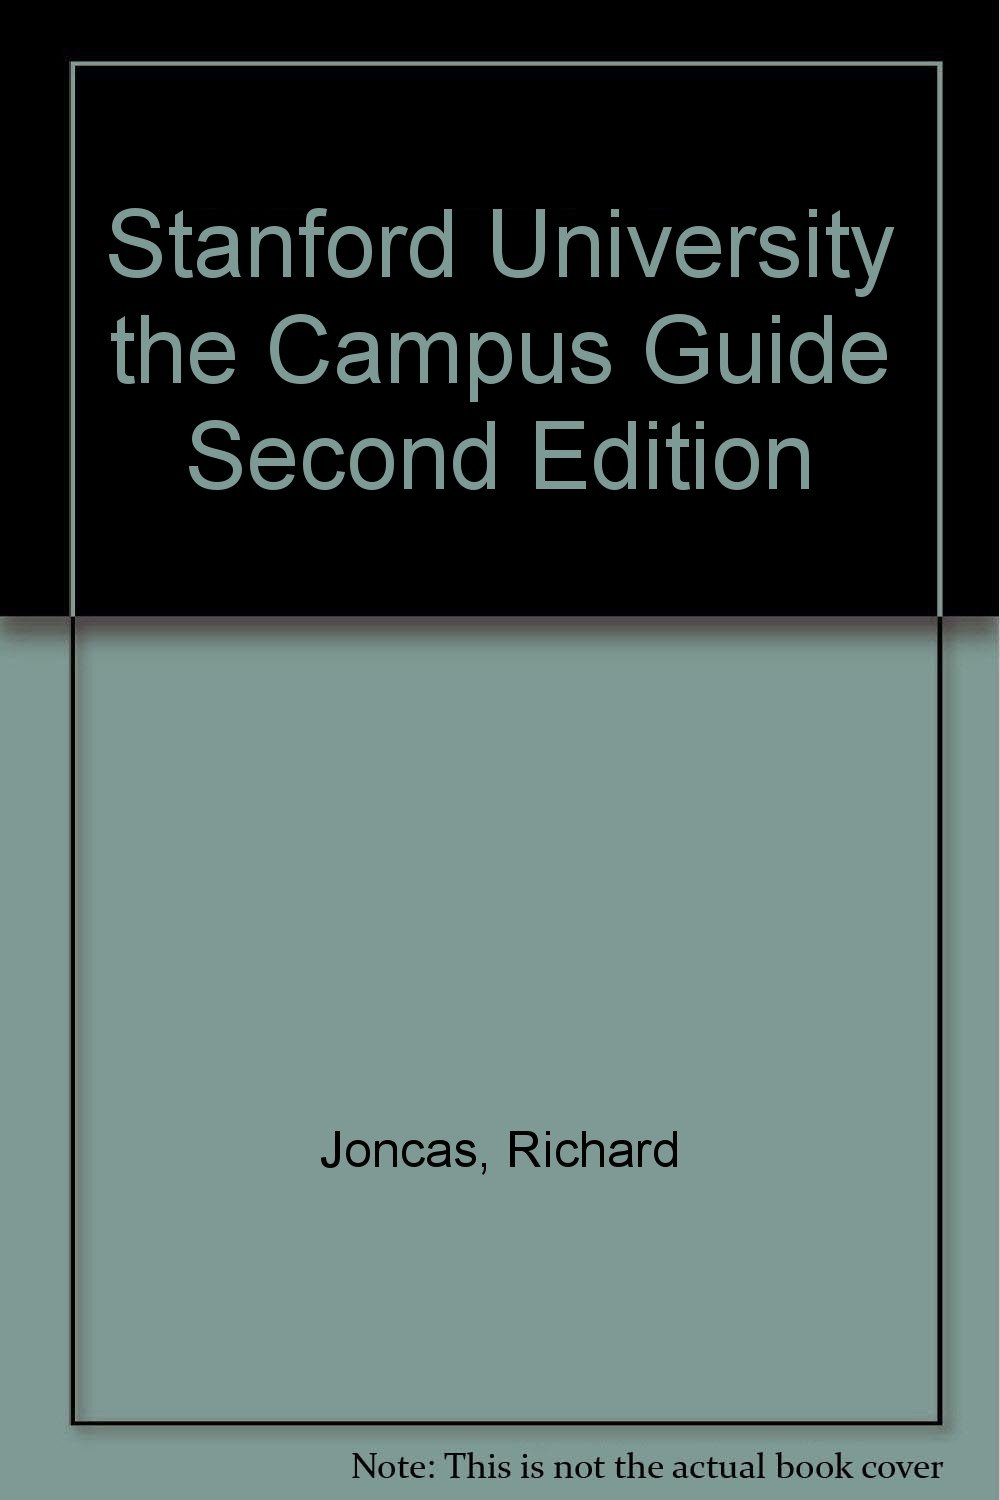 Stanford University the Campus Guide Second Edition